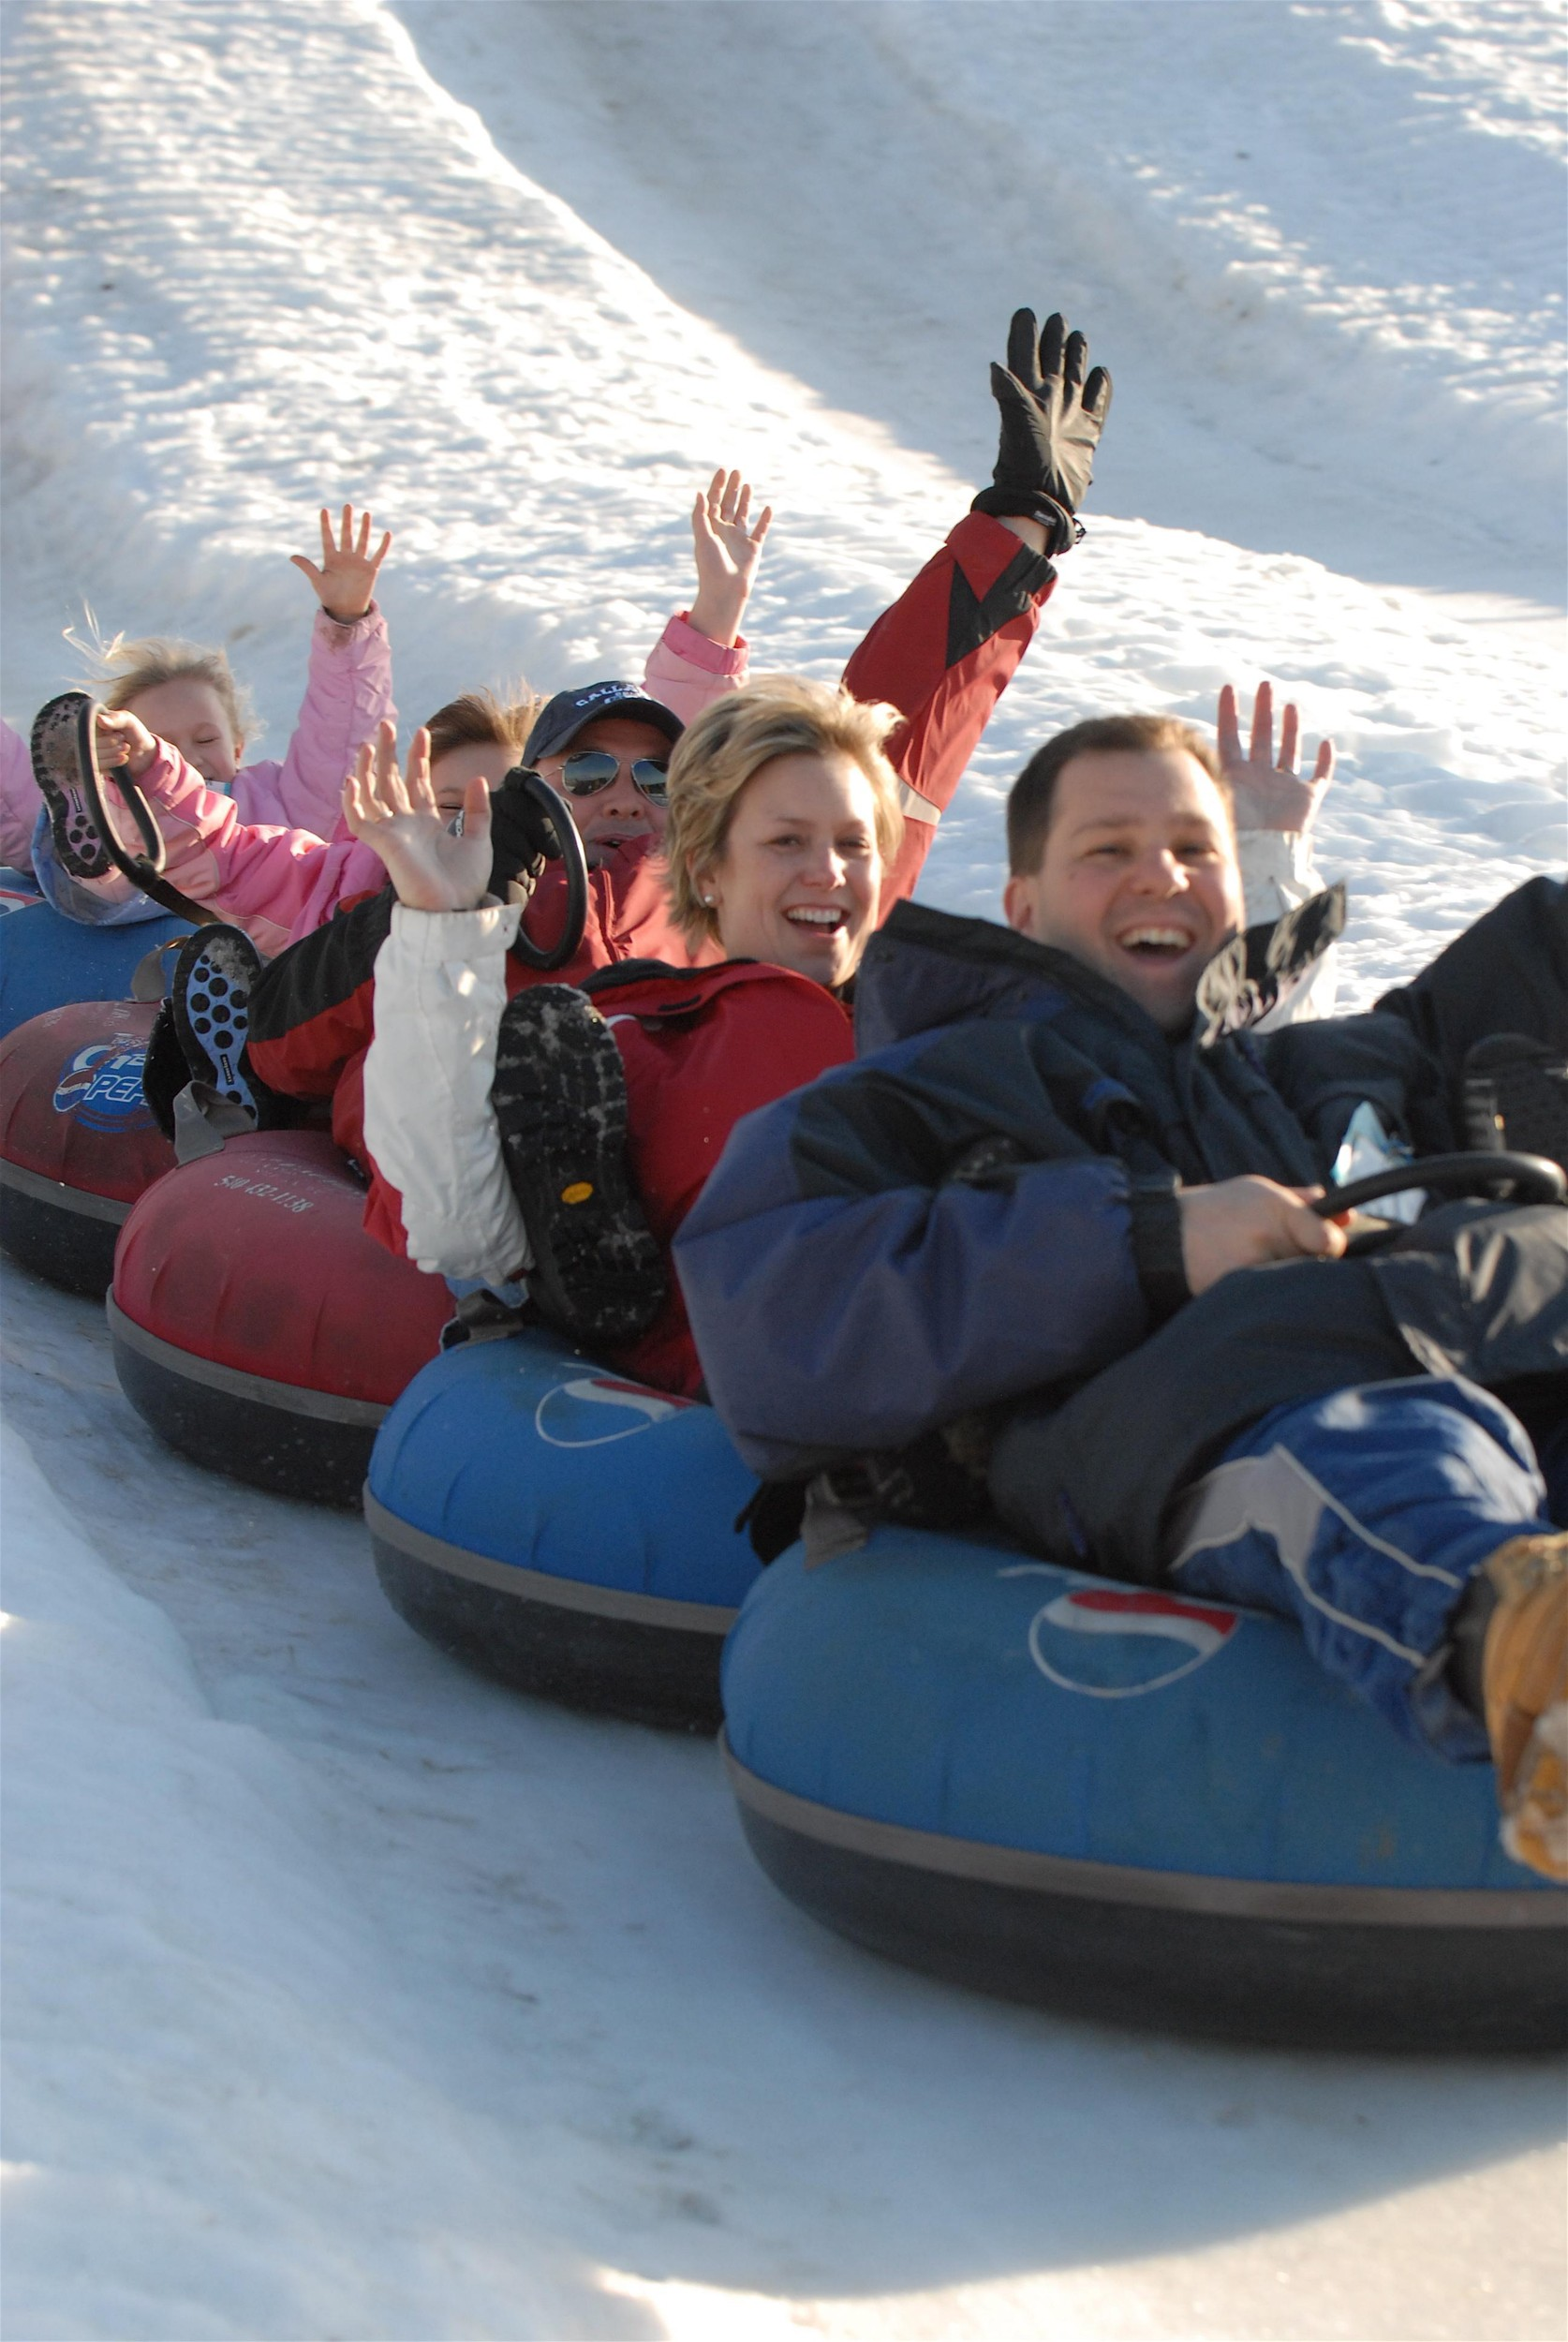 Family tubing at Bryce Resort, VAundefined